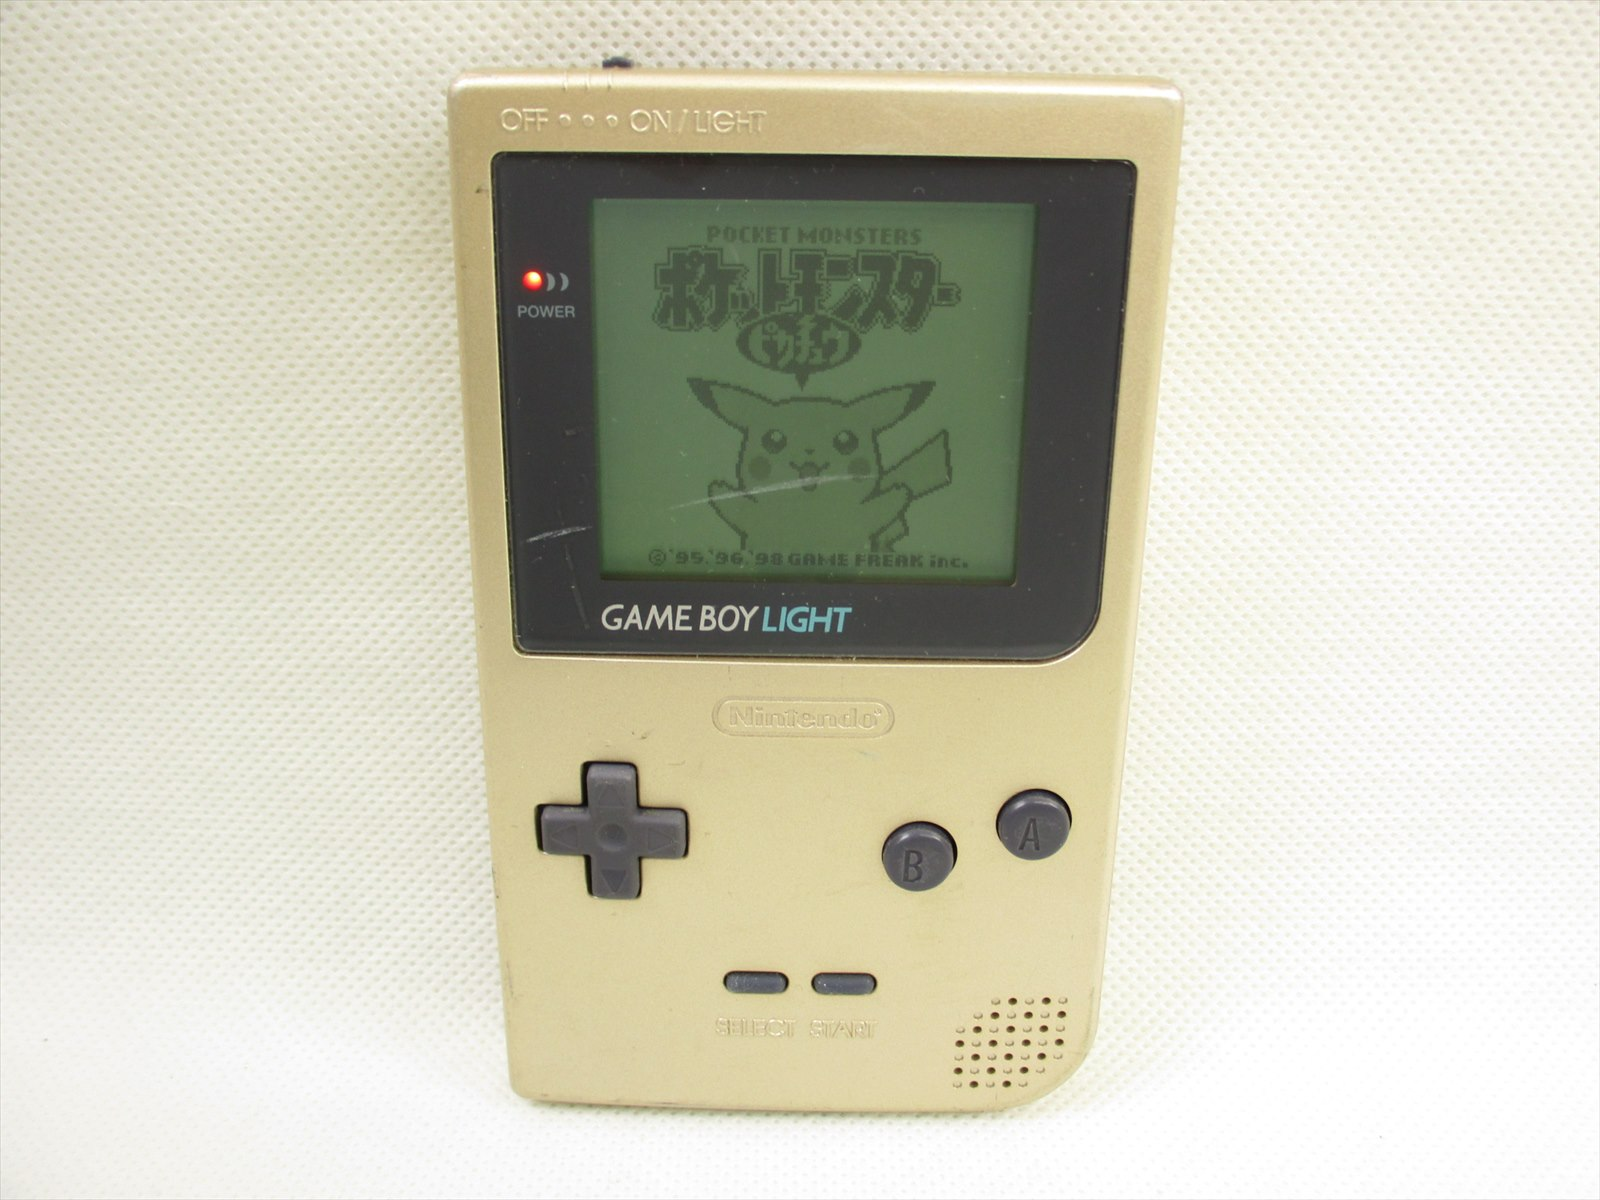 Game boy color list - Game Boy Light Gold Console Mgb 101 Nintendo Gameboy Tested Japan Gb 2229 Jp